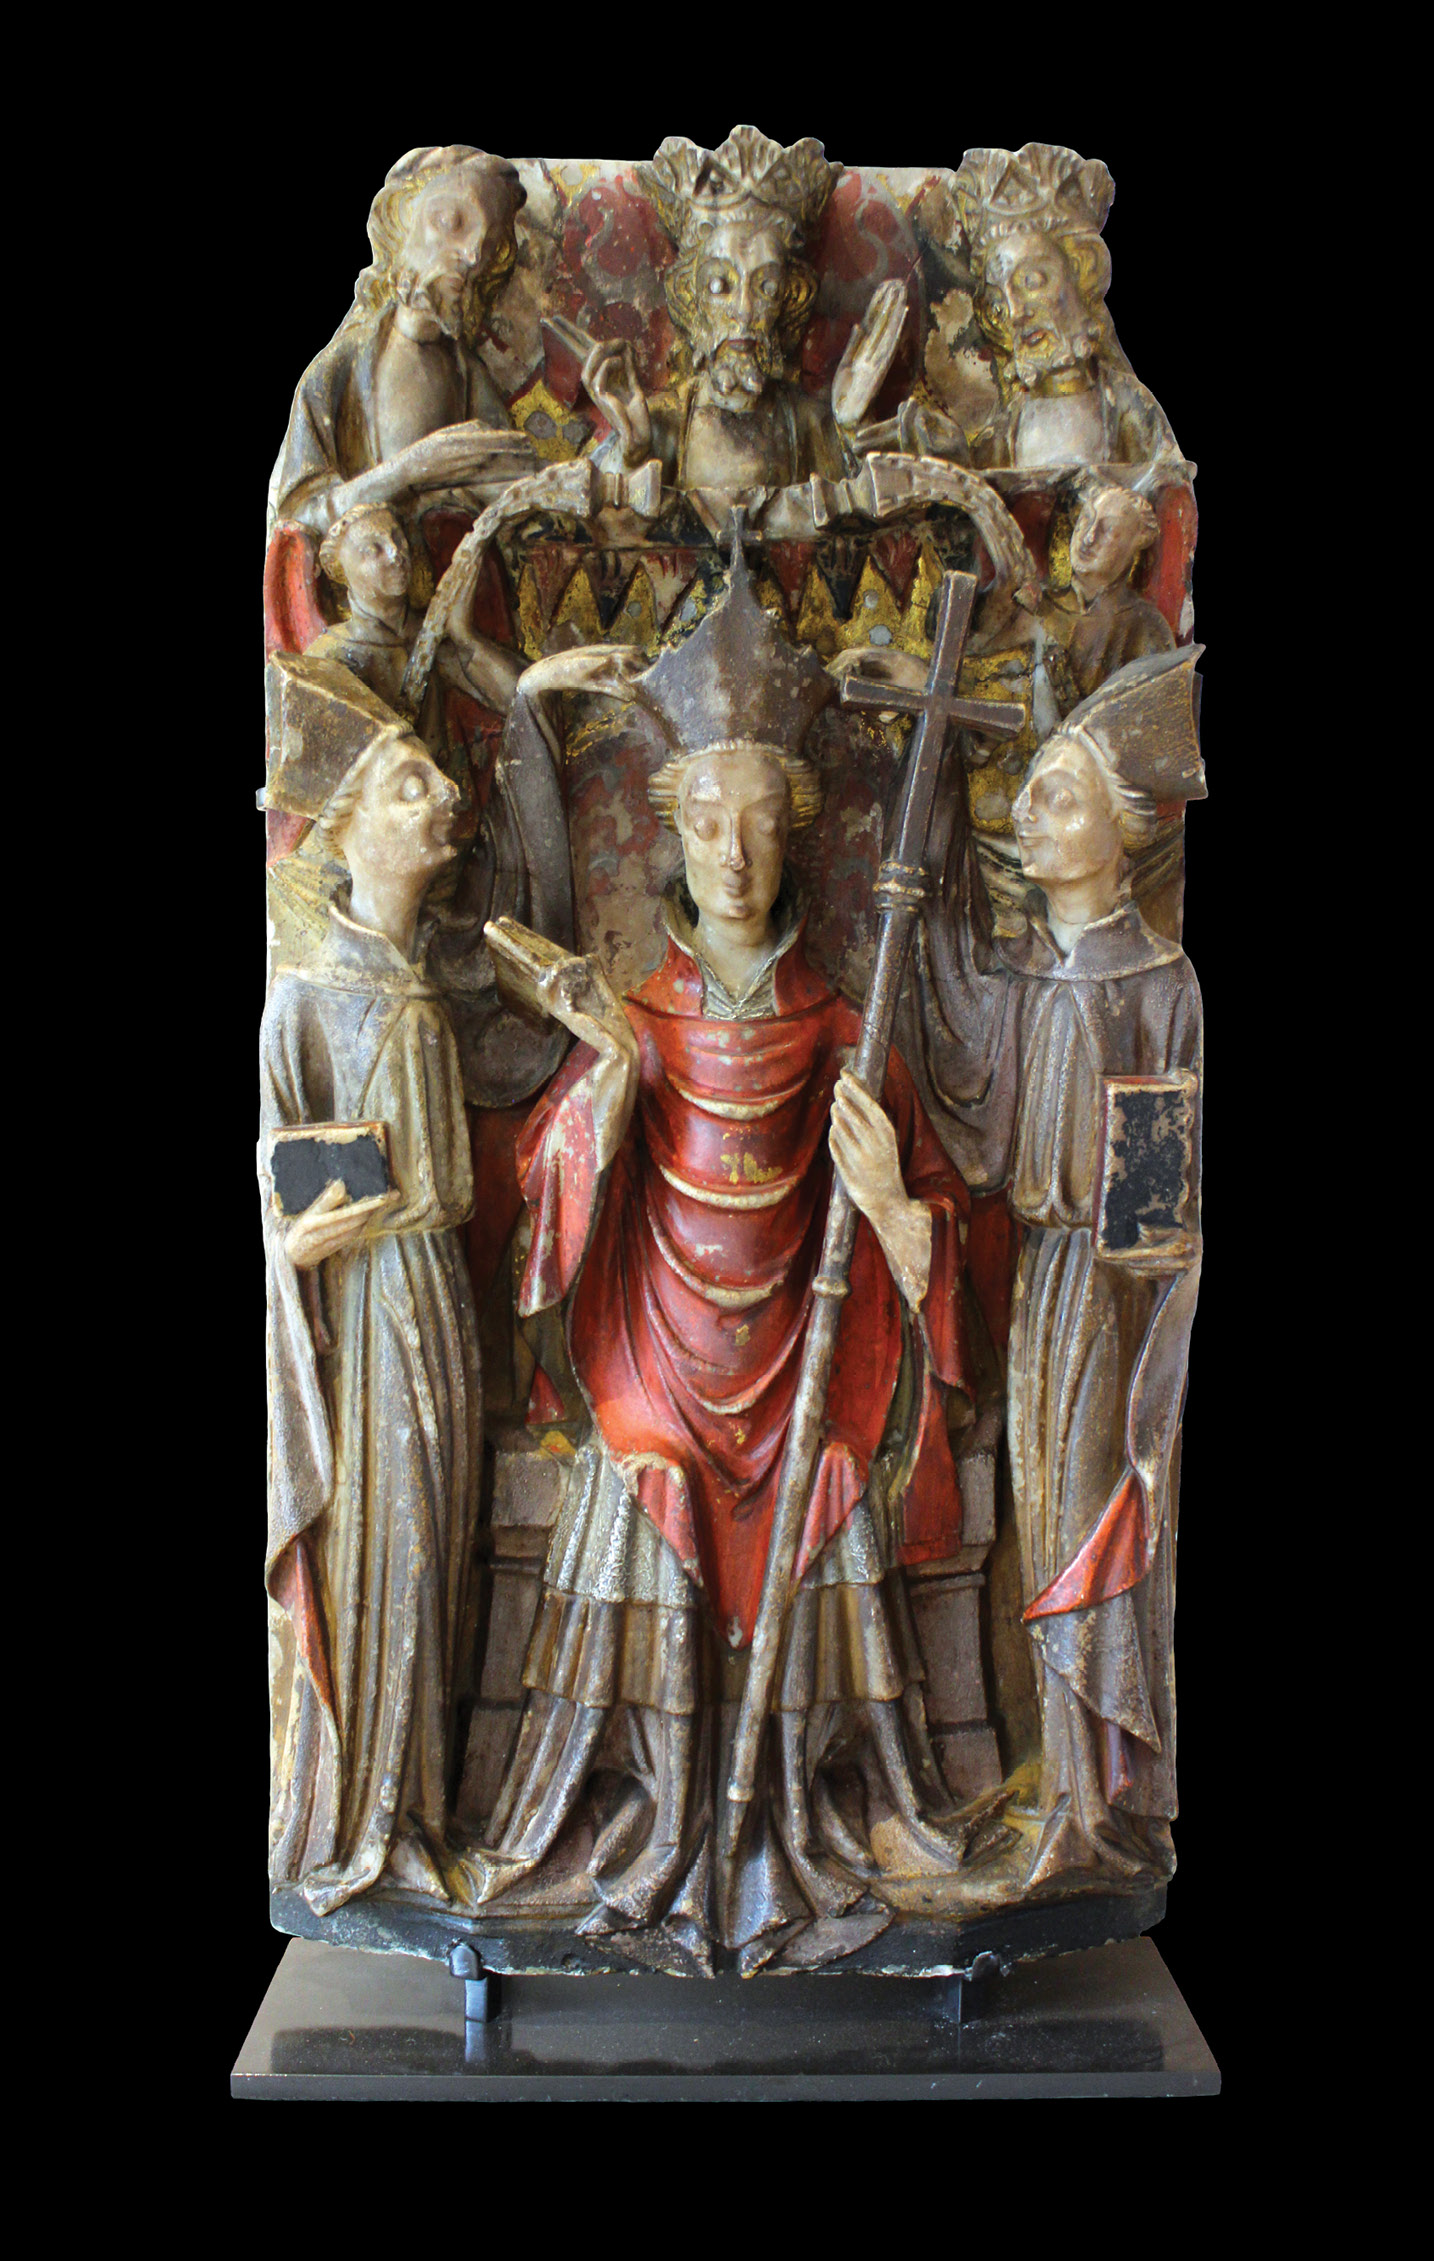 right Made c.1425-1450, on the eve of Henry VIII's orders for the destruction of Becket's shrine, this alabaster panel comes from an altarpiece depicting Becket's life and miracles. Here God the Father presides over Becket's consecration as Archbishop of Canterbury, an event that took place on 6 June 1162. Henry II appointed Becket who had not even been ordained as a priest at the time in the belief that his friend would be compliant.